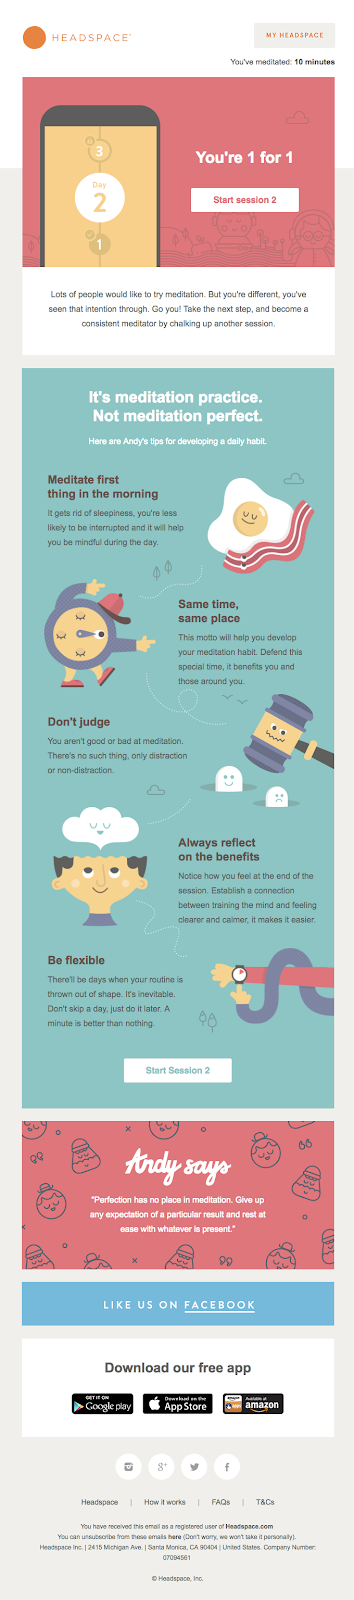 Headspace onboarding email